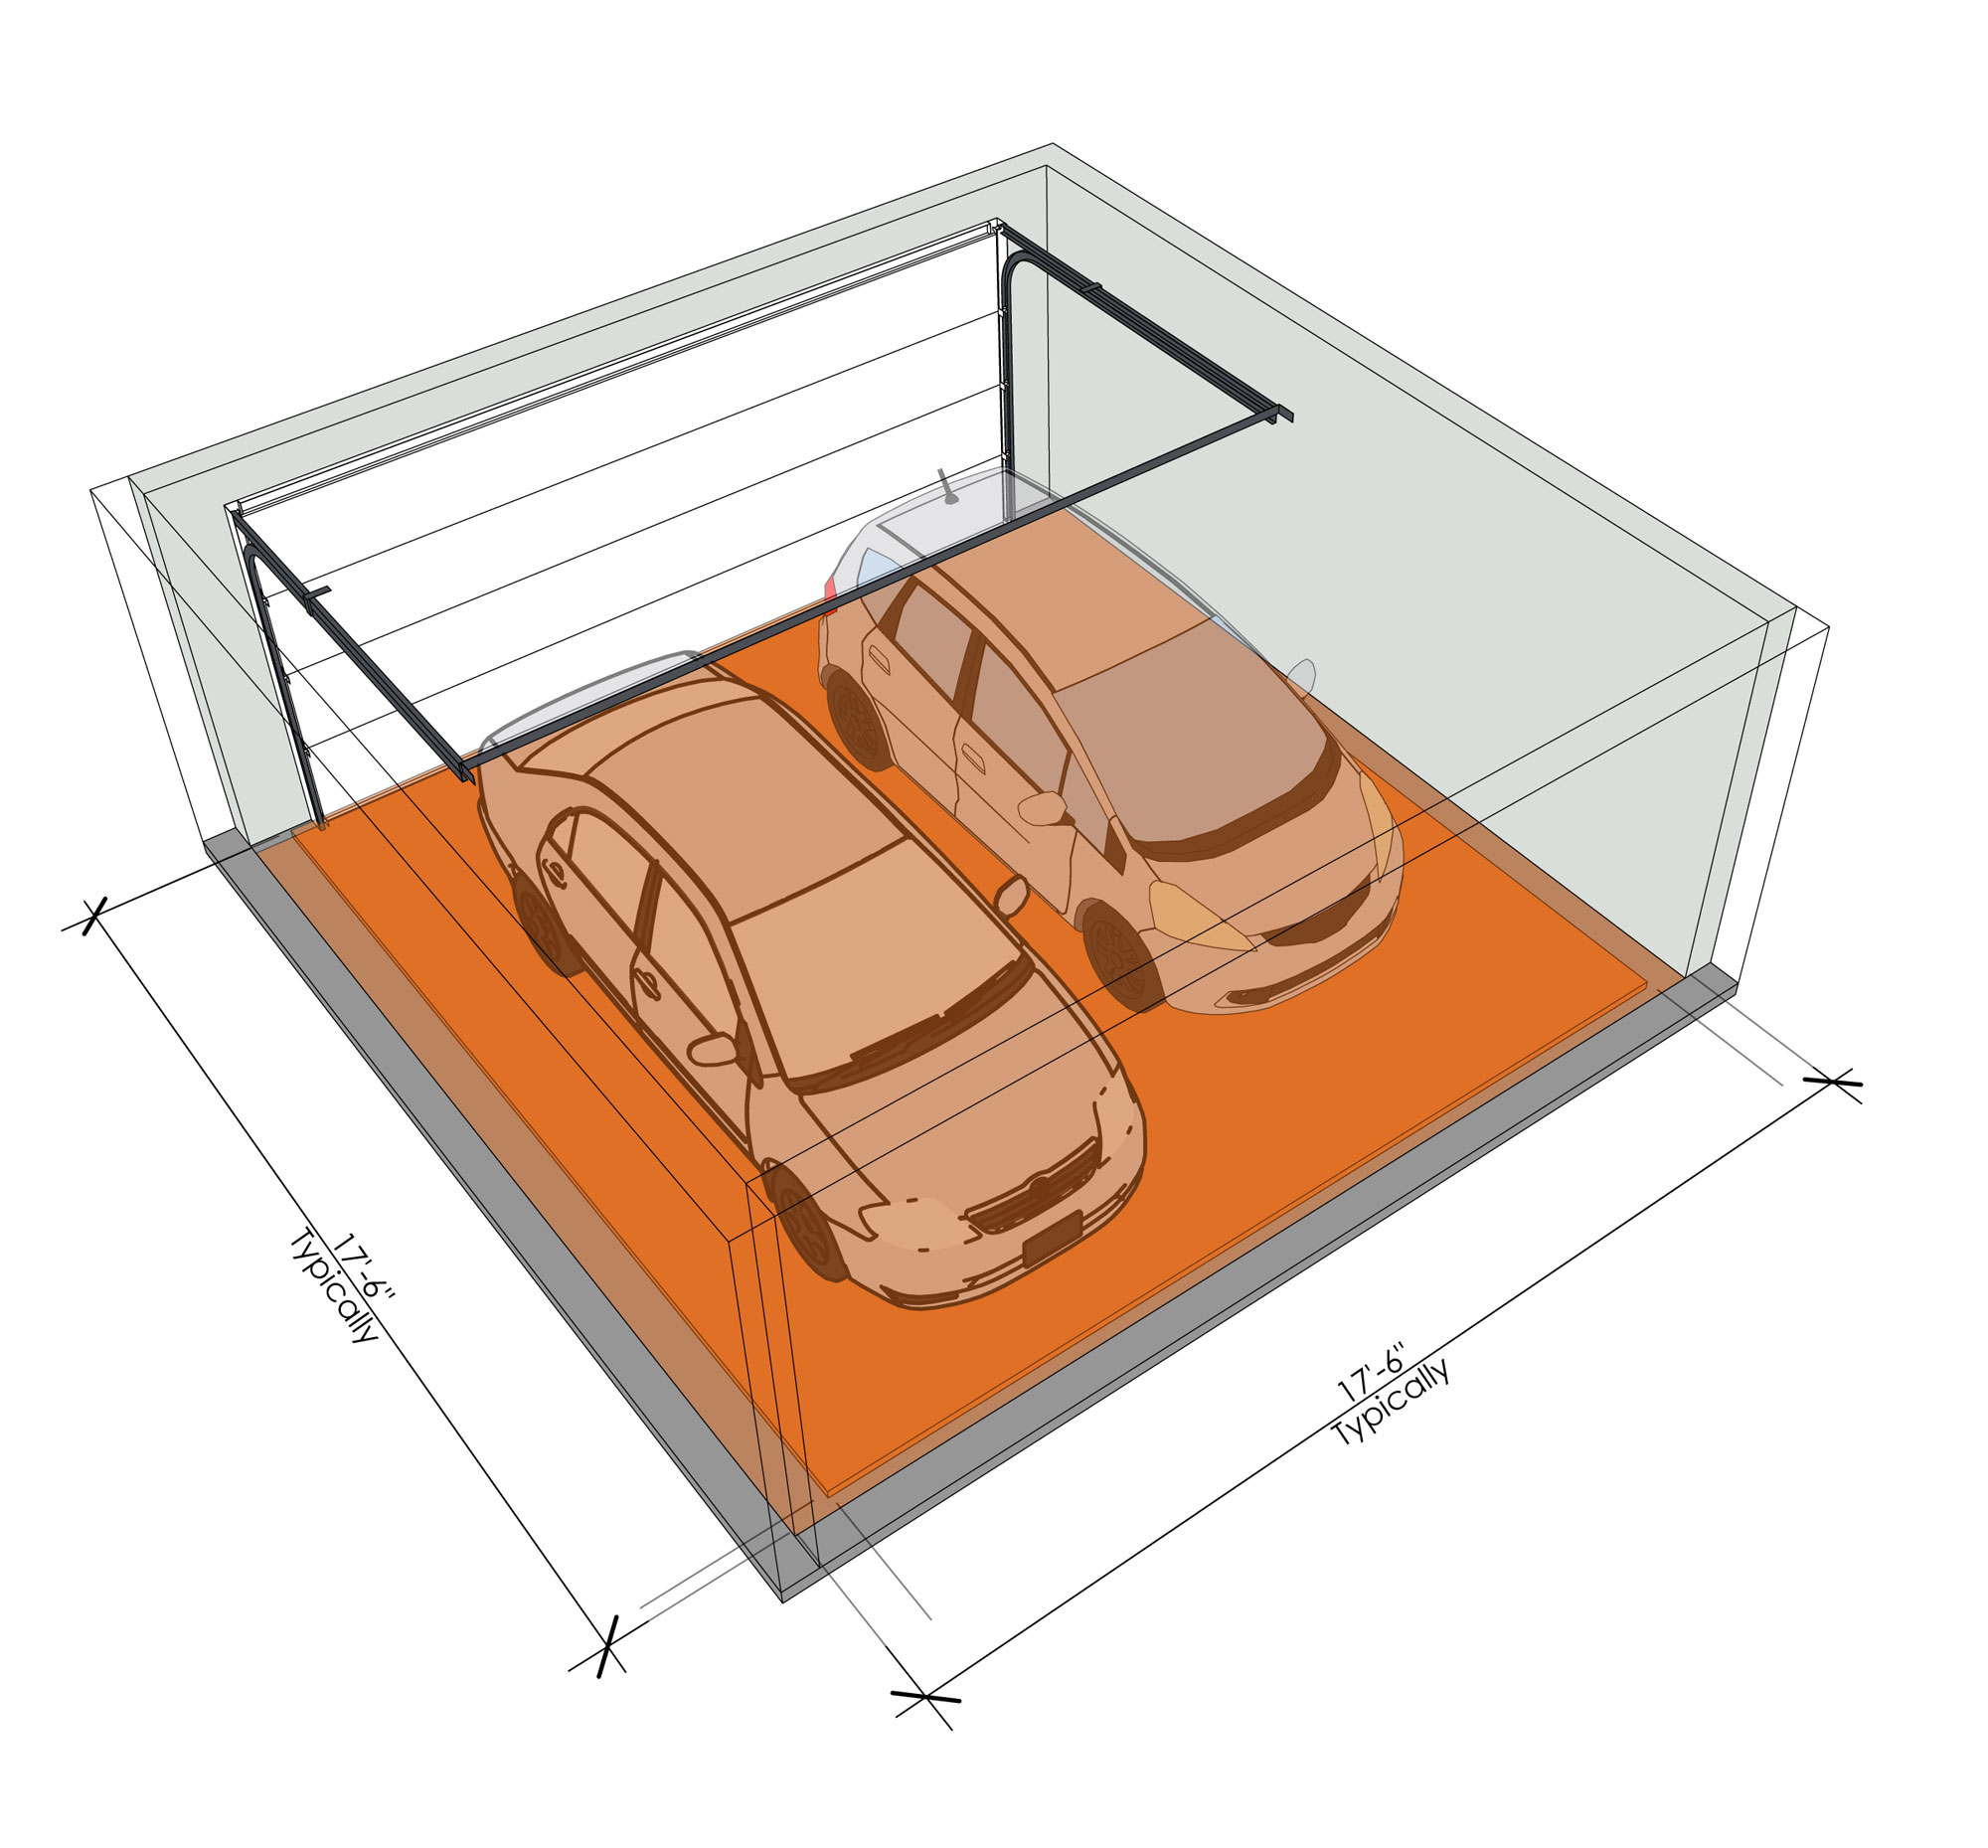 5 Key Criteria for a Quick and Cost Effective ADU Garage